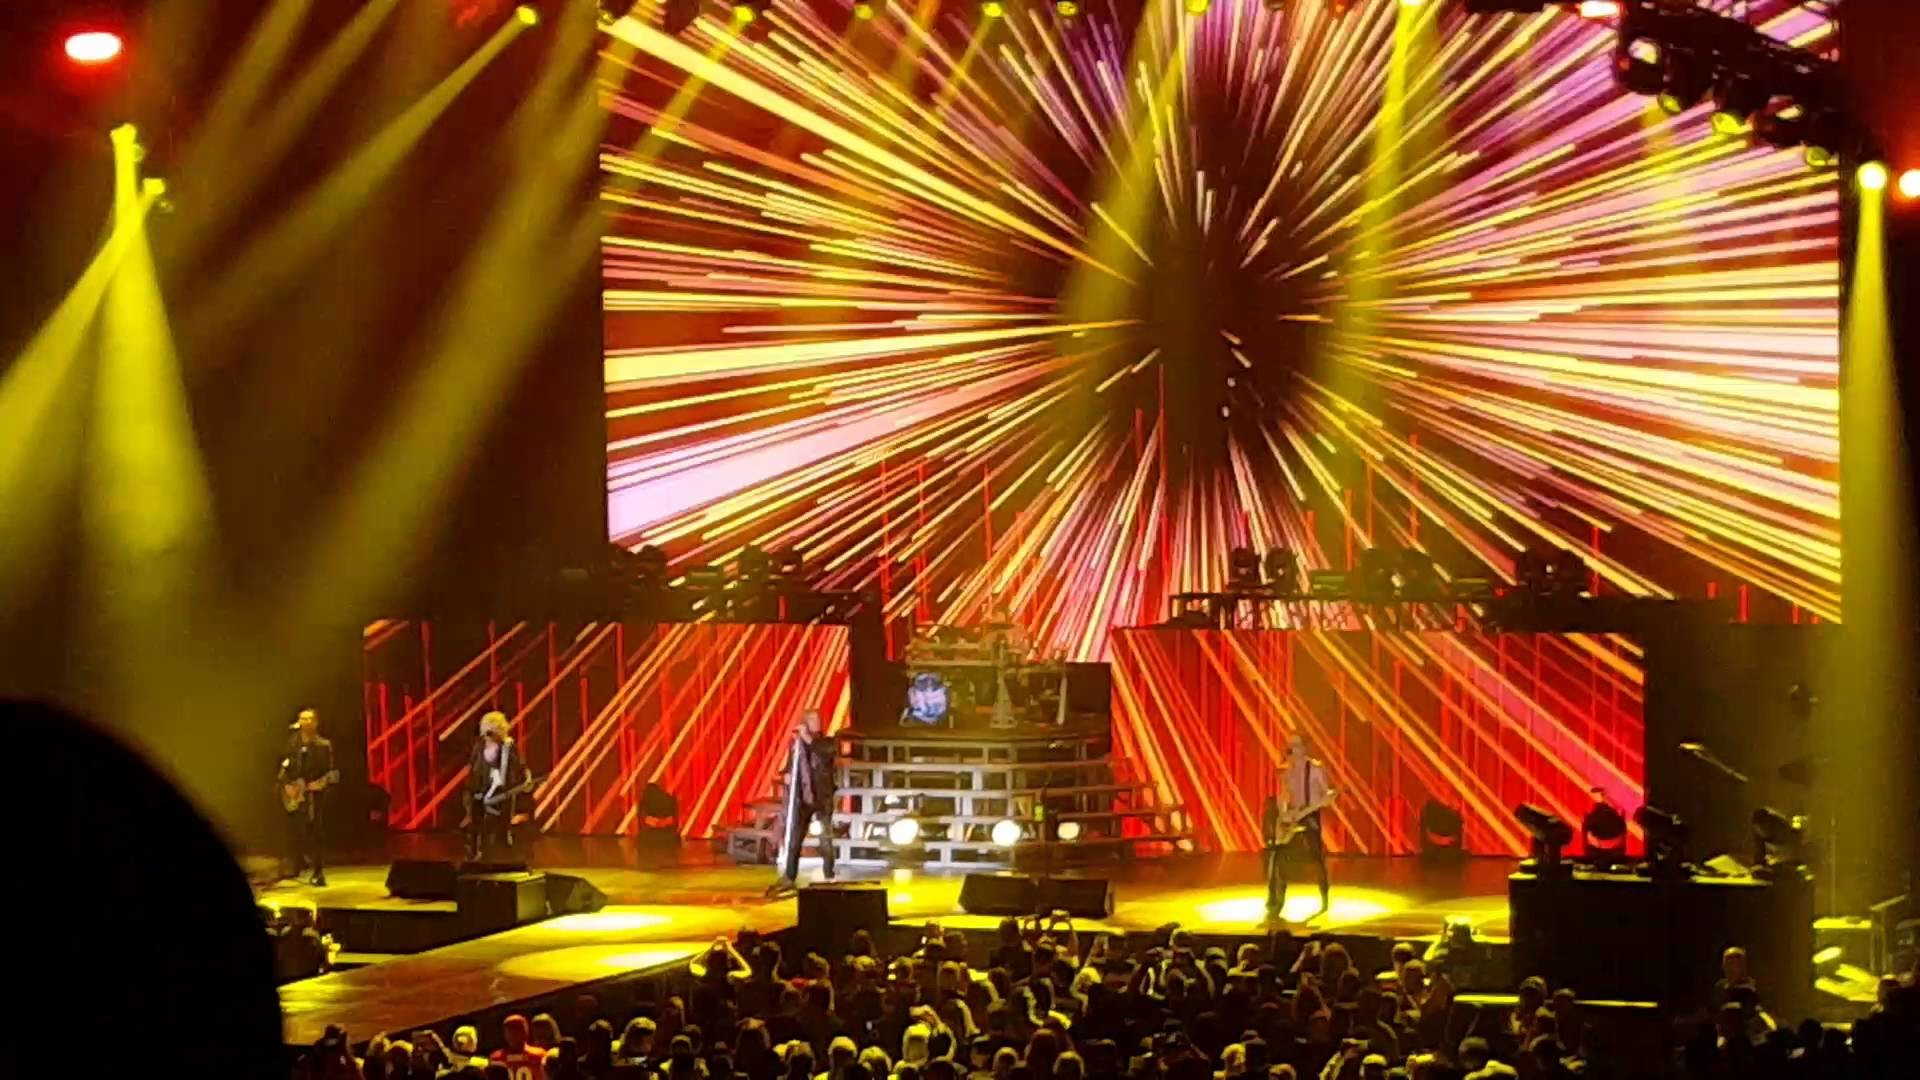 1920x1080 Def Leppard- Let's Go (Live) BB&T Center January 29,. 2016